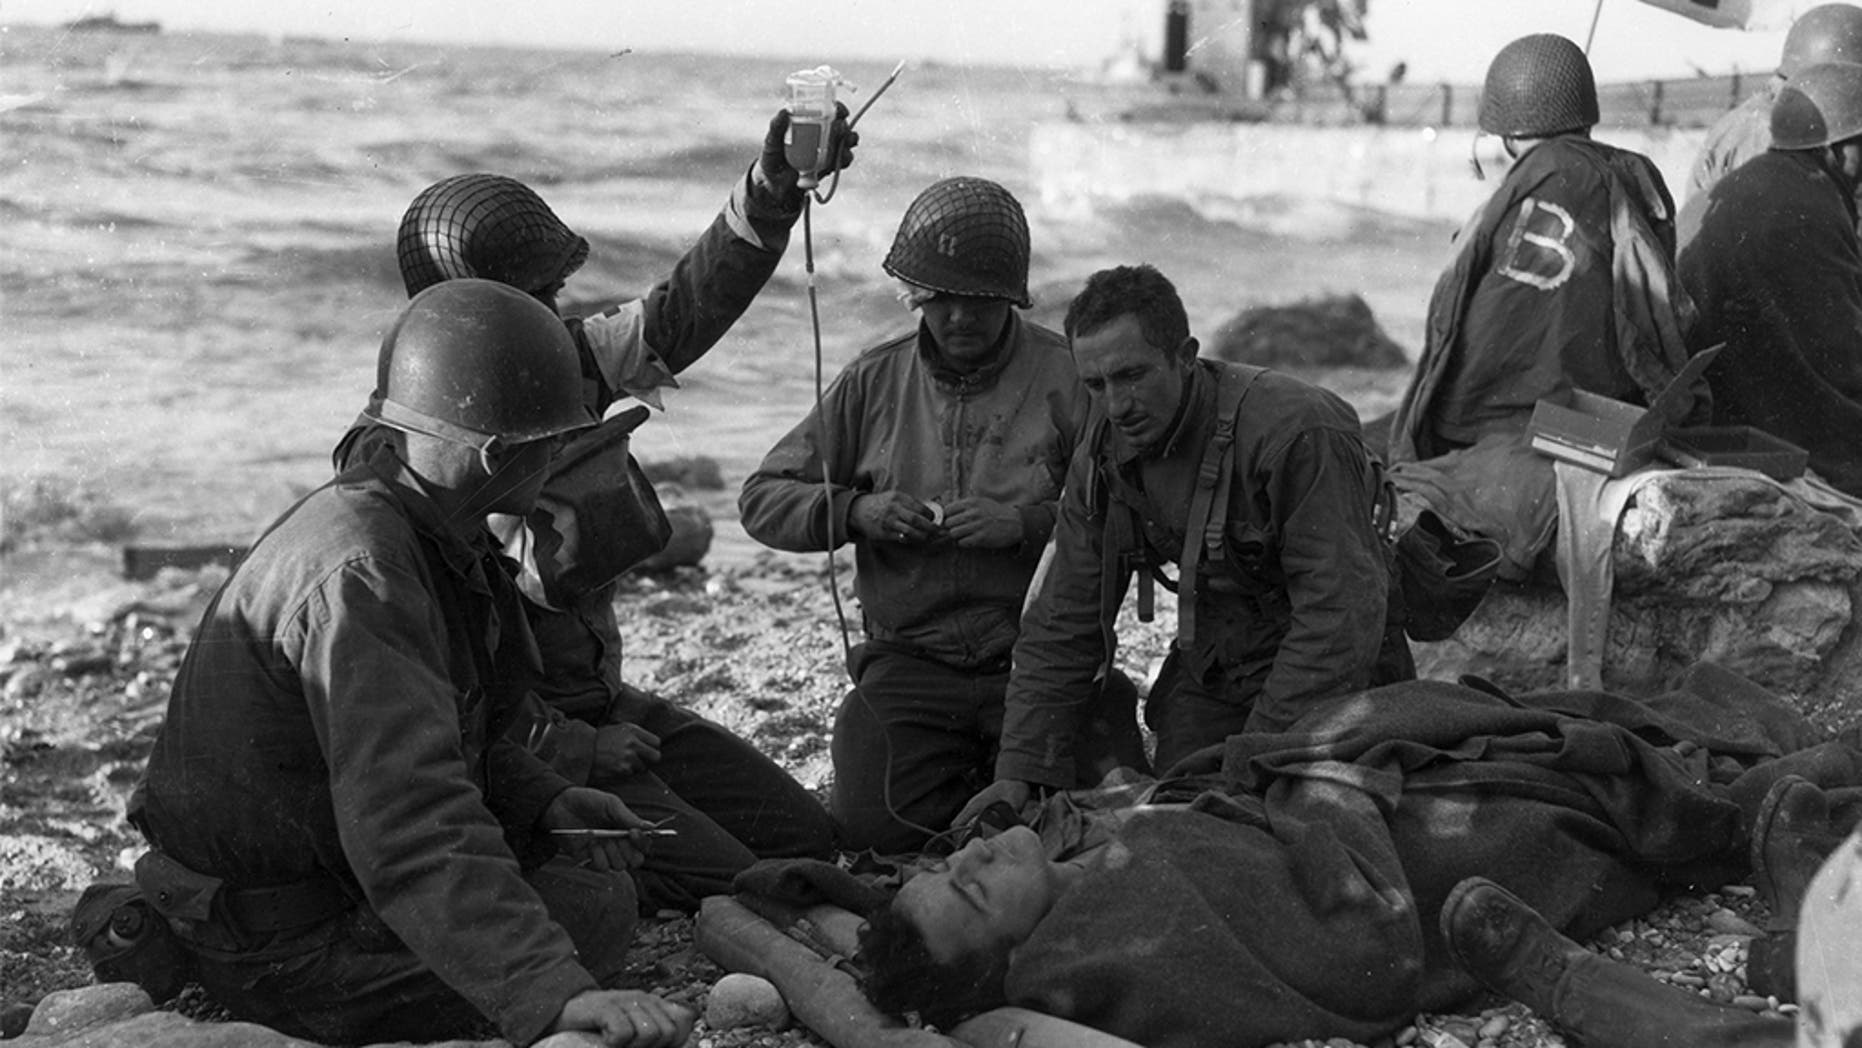 FILE -- June 12, 1944: American medics administer a plasma transfusion to a survivor of a landing craft sunk off the coast of northern France. (Photo by Weintraub/MPI/Getty Images)